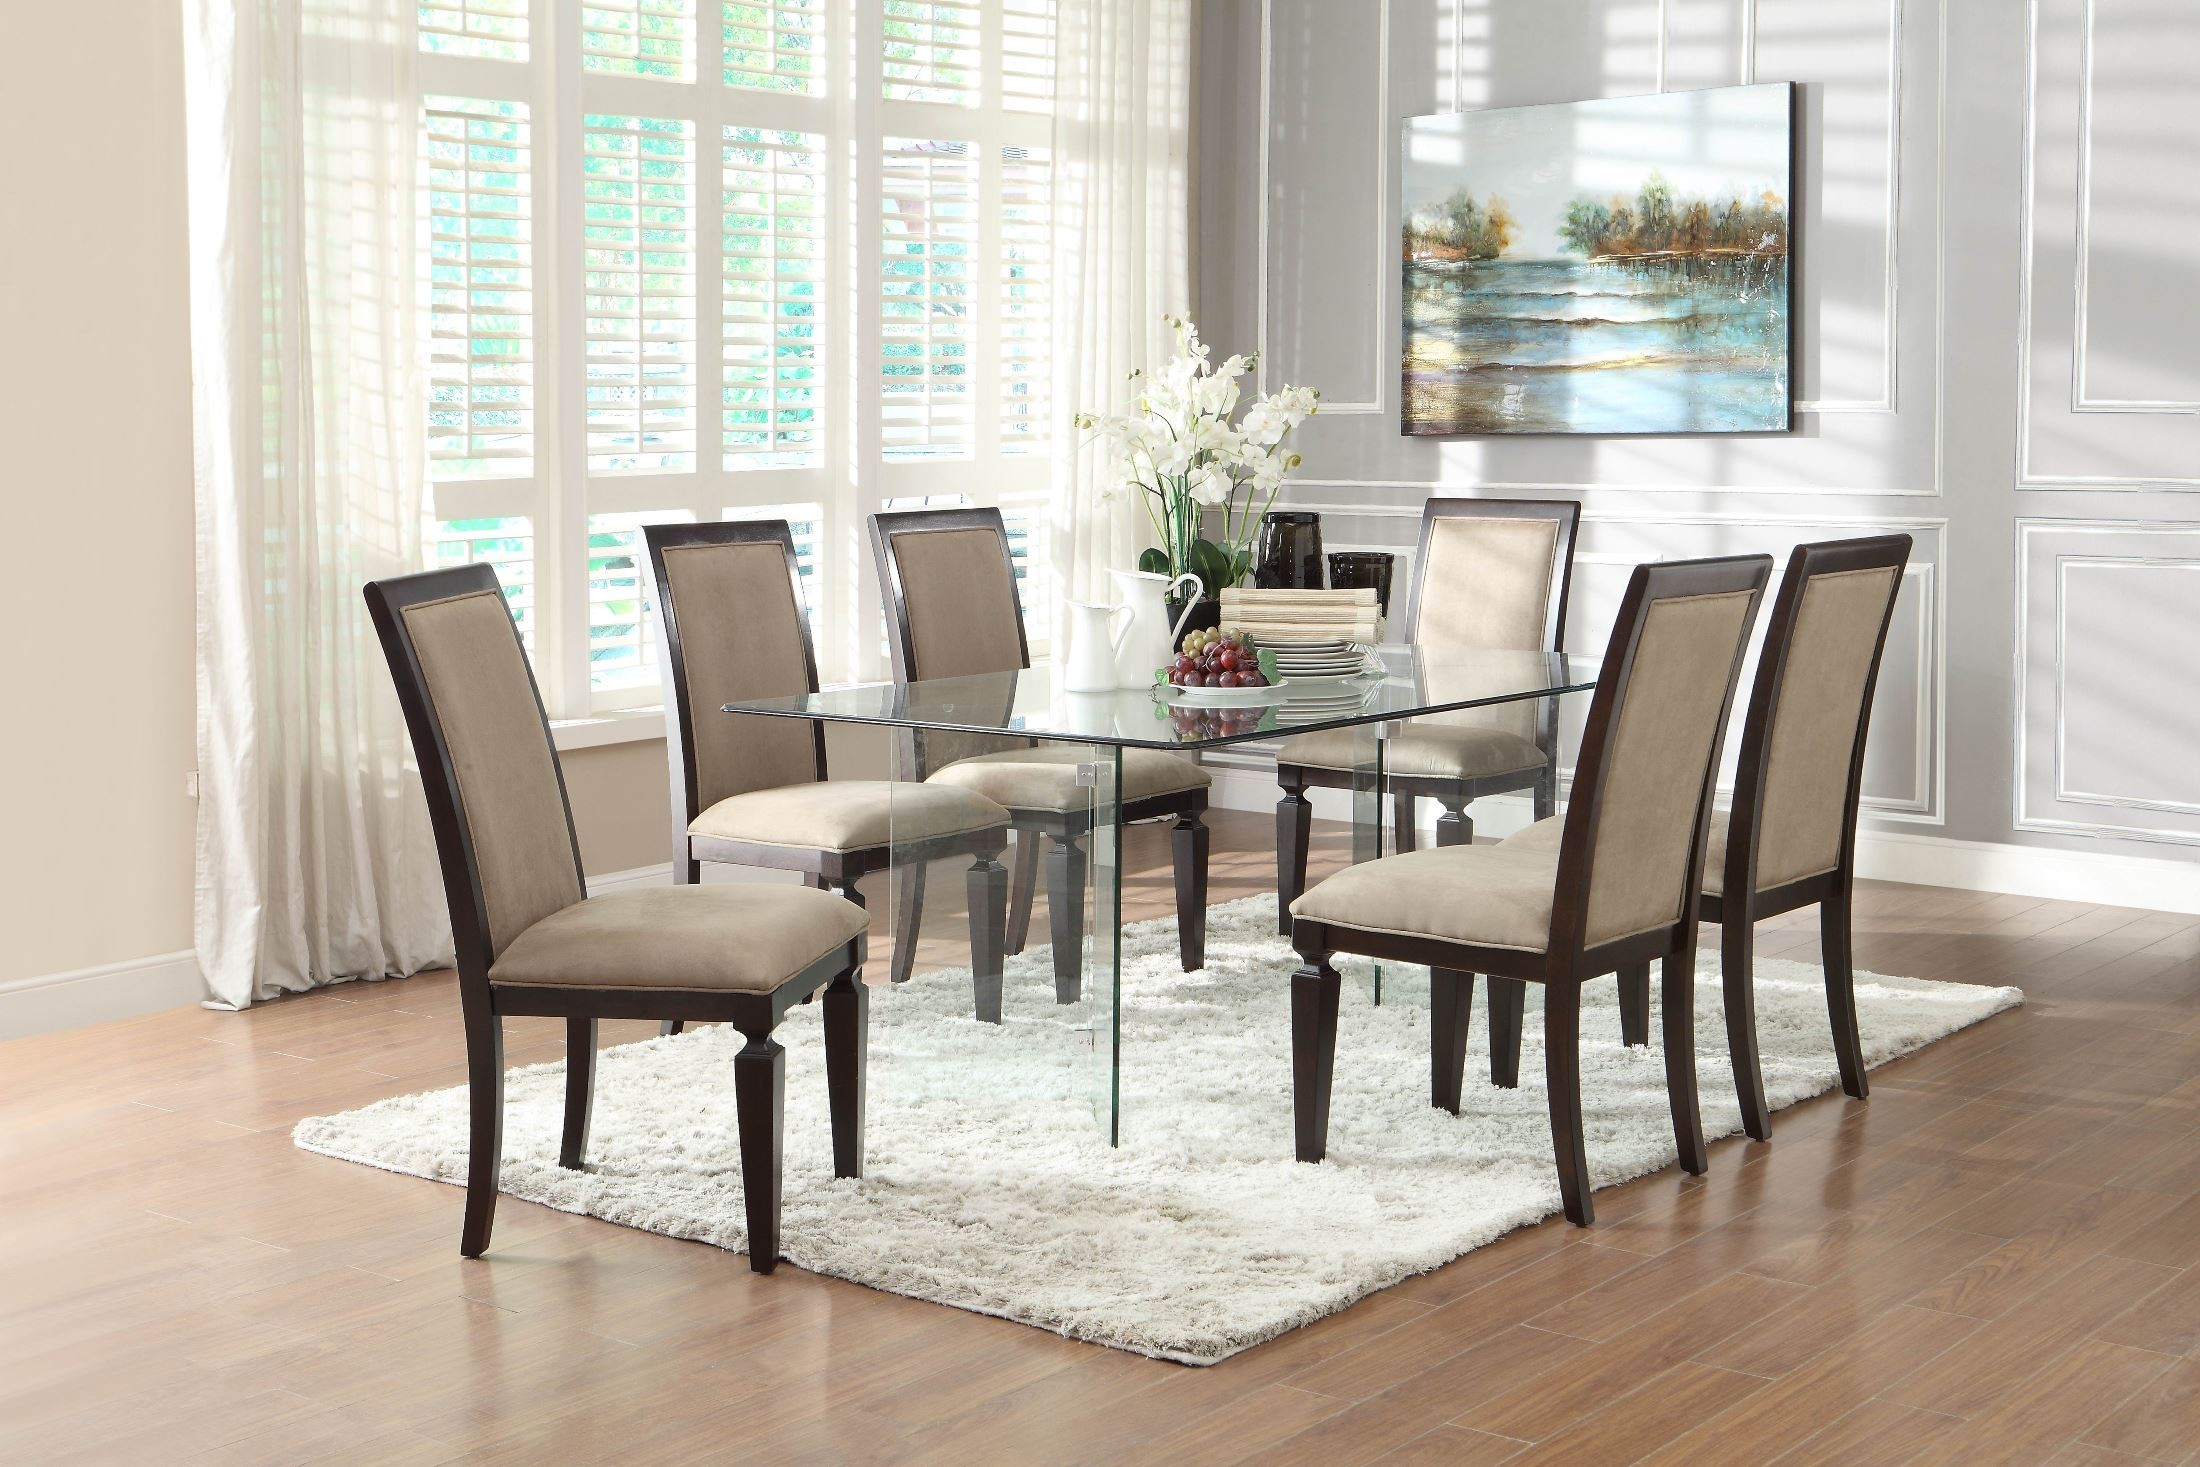 Alouette Rectangular Glass Dining Table from Homelegance 17813  Coleman Furniture